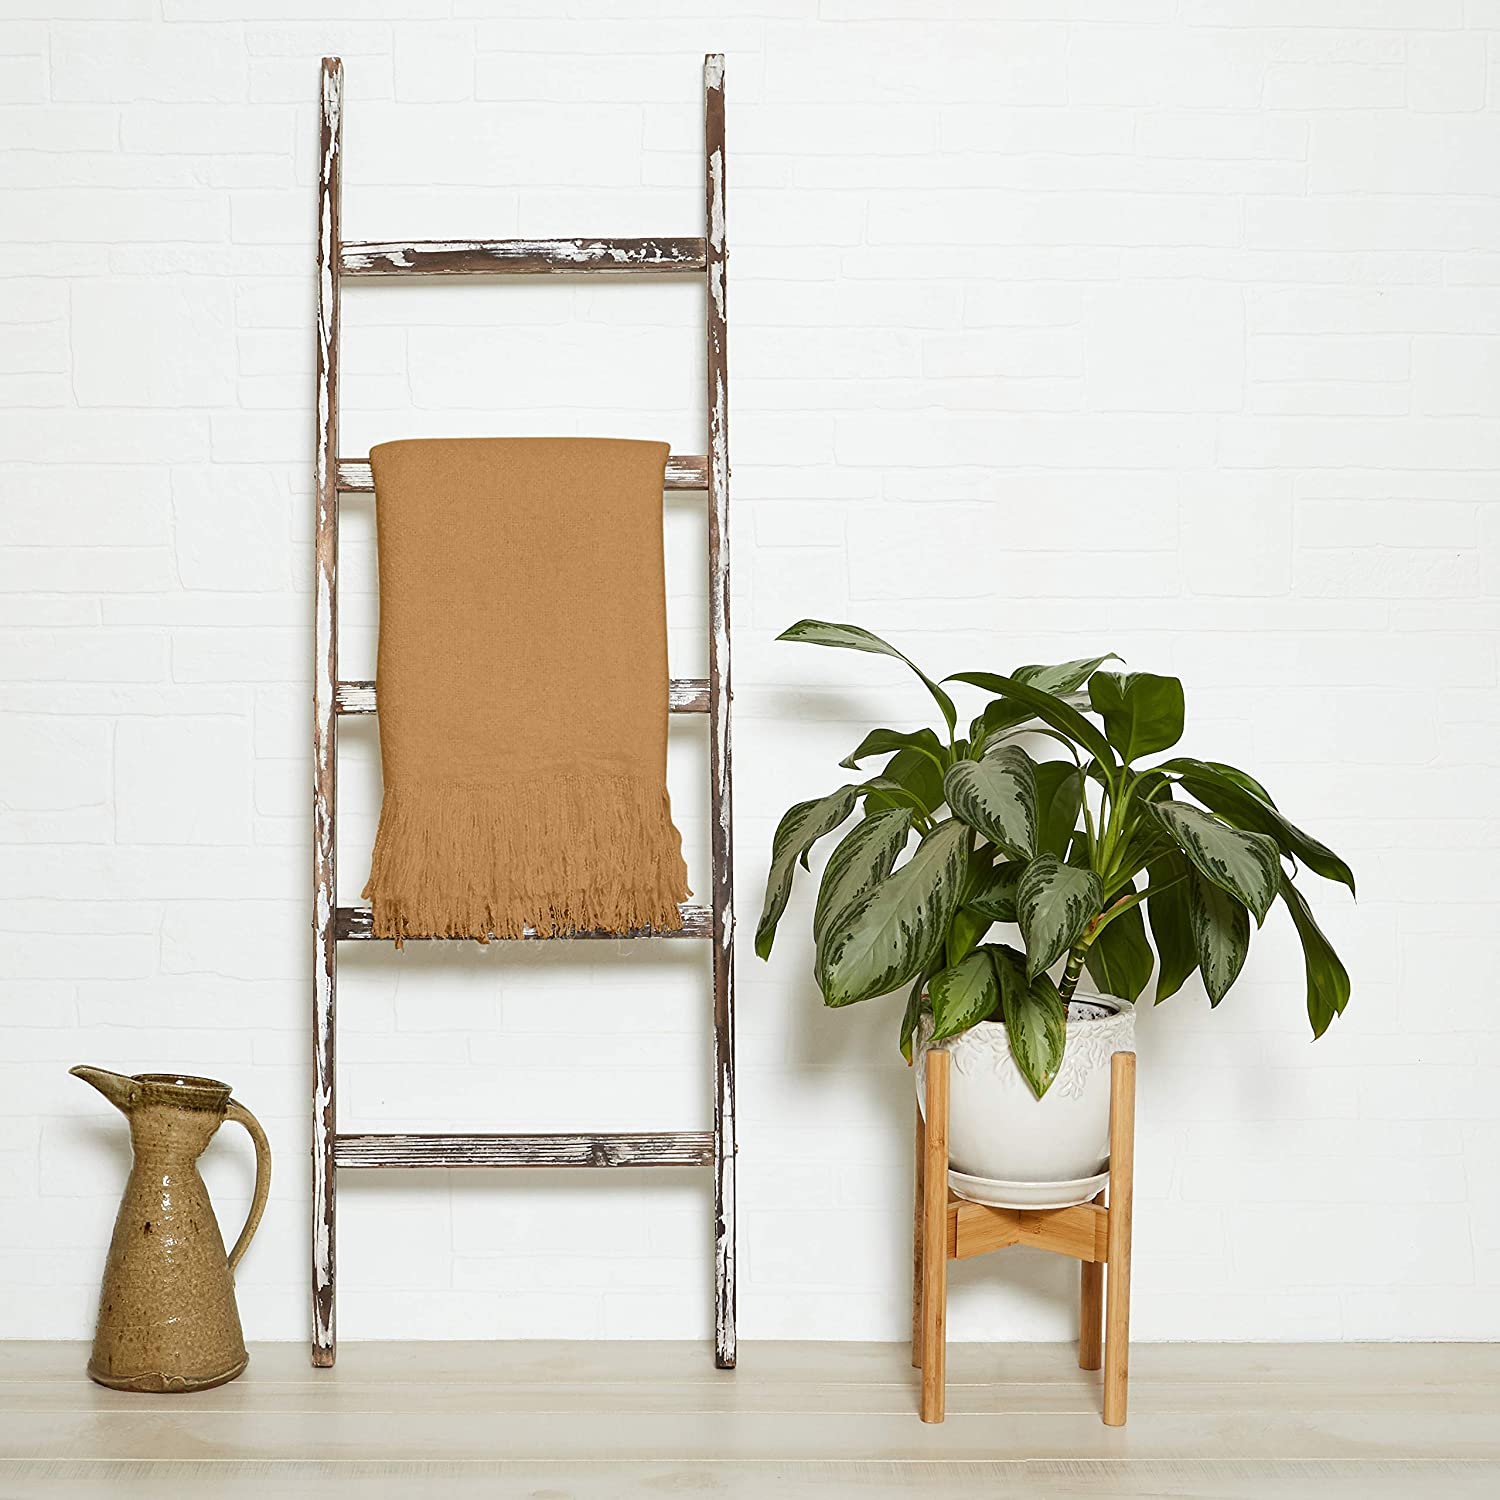 5 ft Rustic Farmhouse Blanket Ladder – Decorative Wooden Display Wall Leaning Wood Farm Decor Rack for Throw Towel Quilt & Blankets Holder Display Shelf - Old Antique White Wall Ladders House Decorati